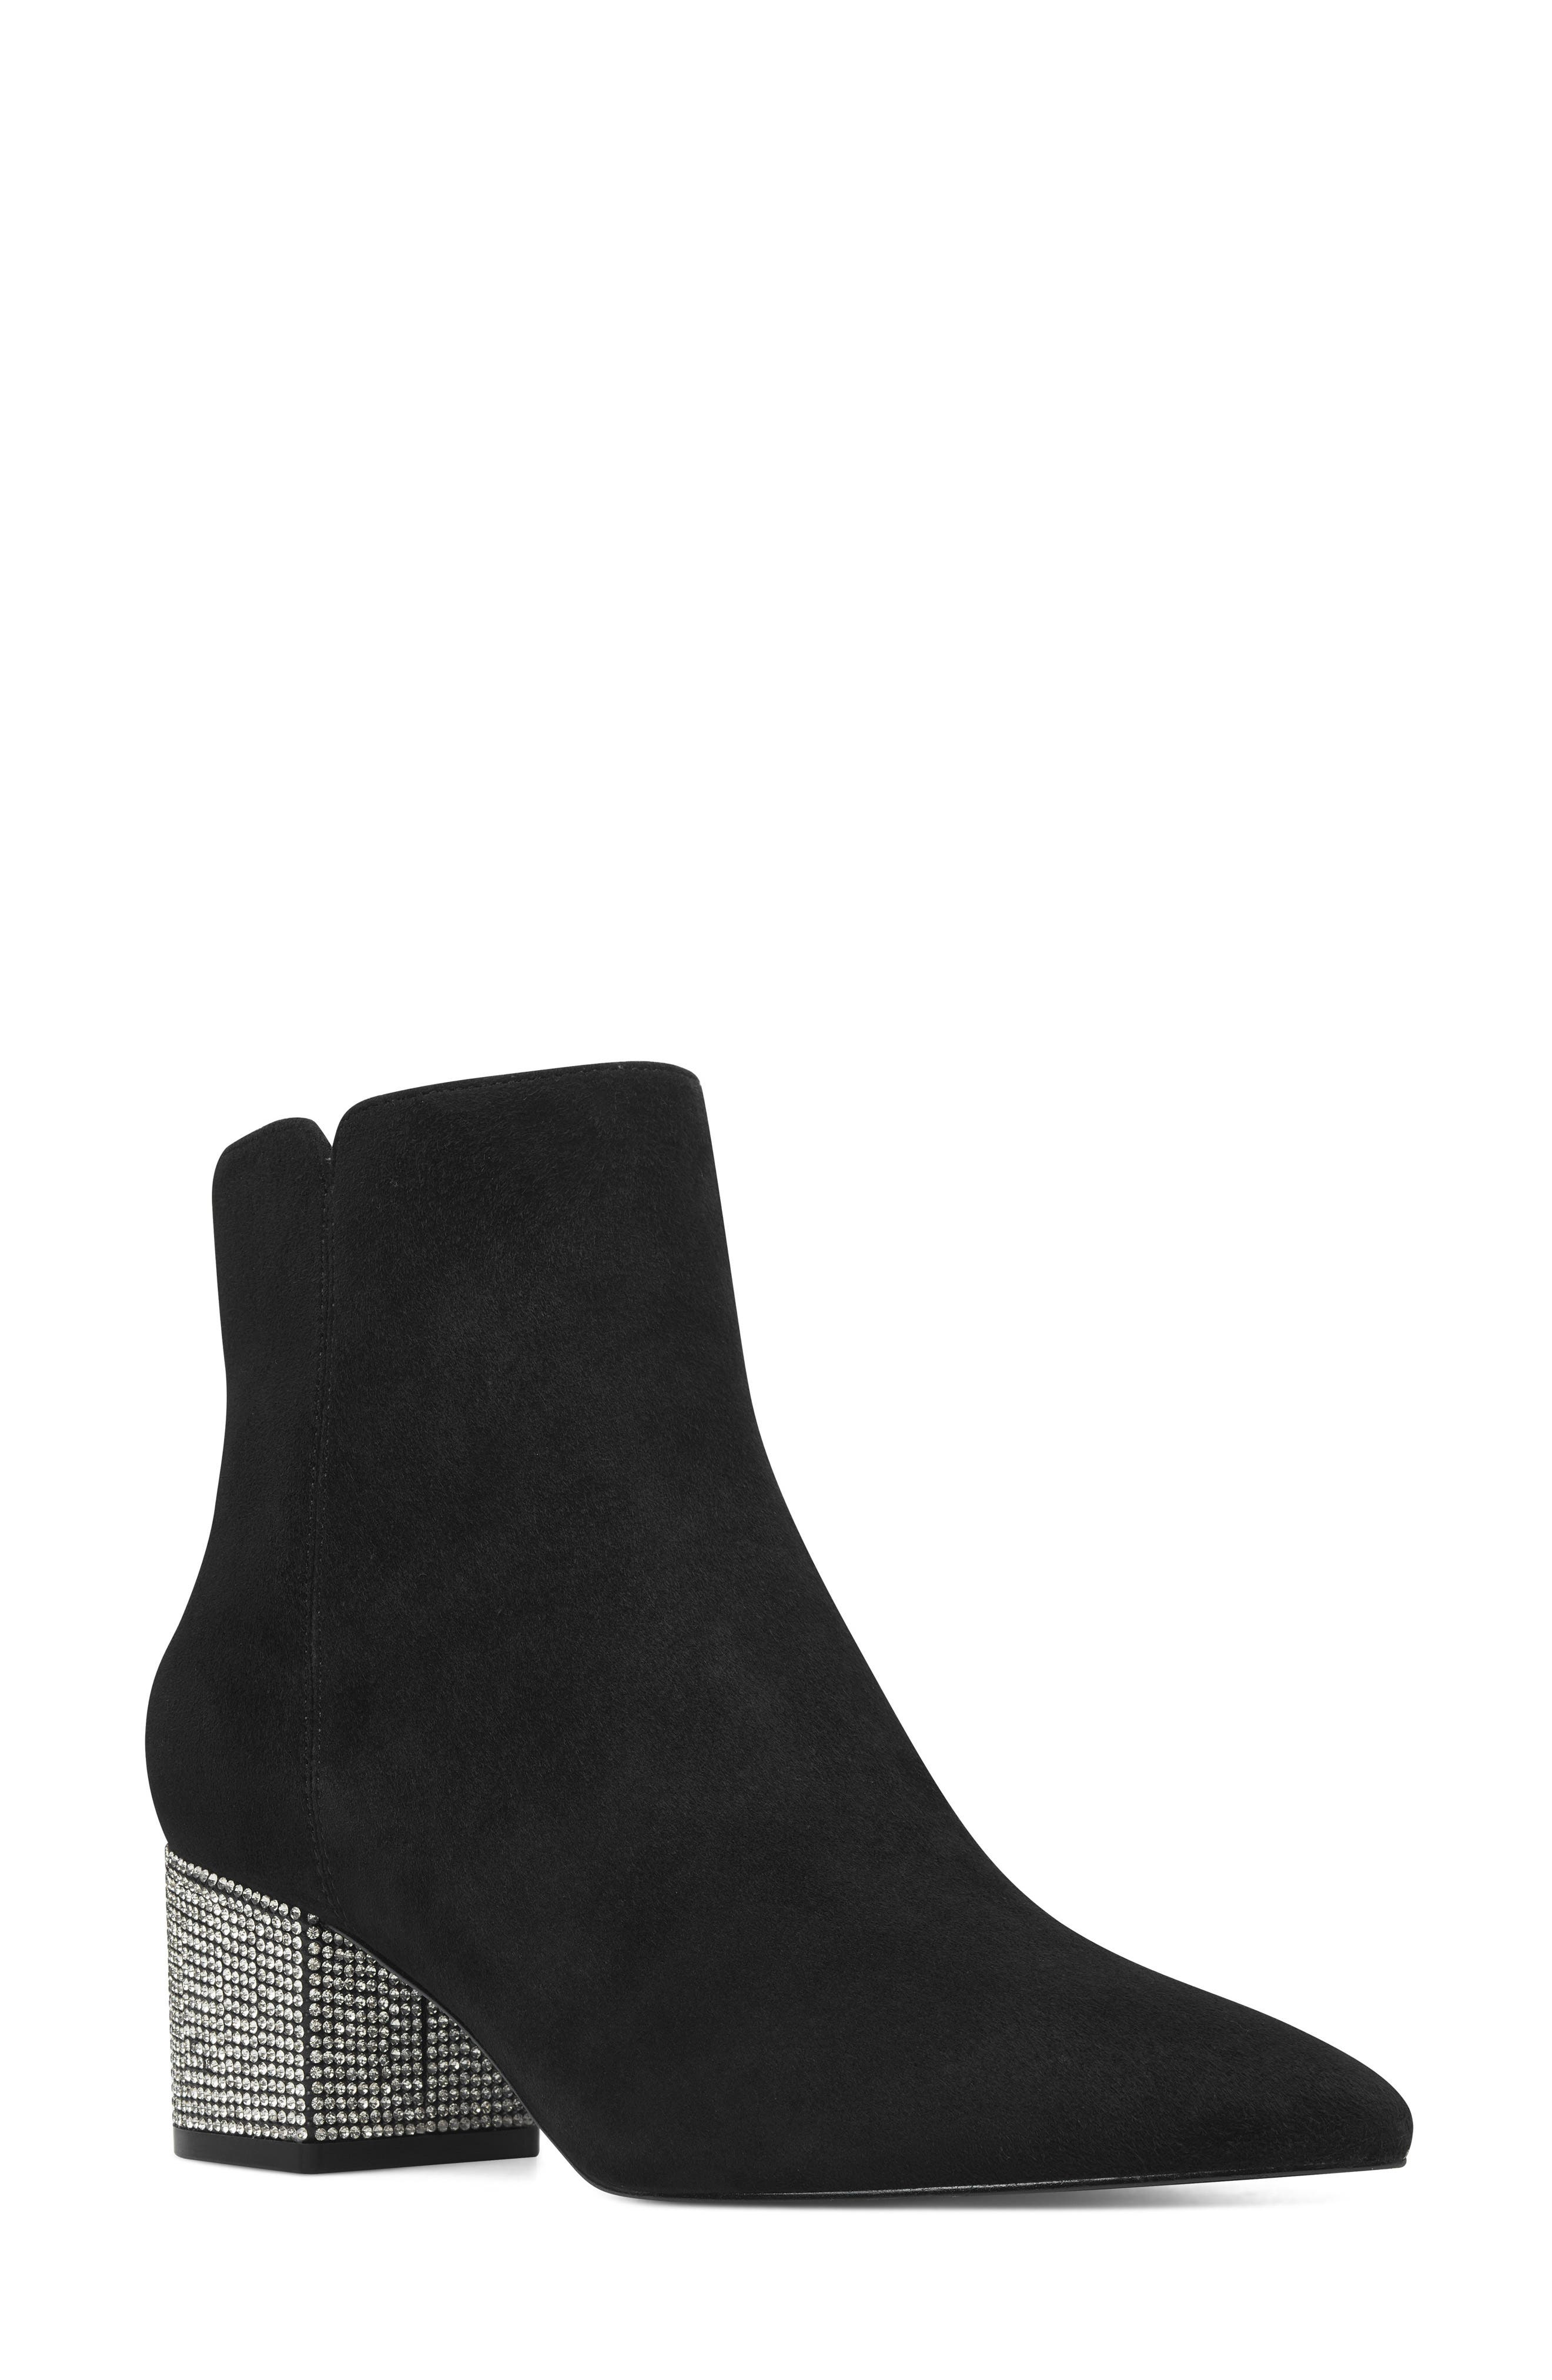 Nine West Richick Crystal Heel Bootie- Black